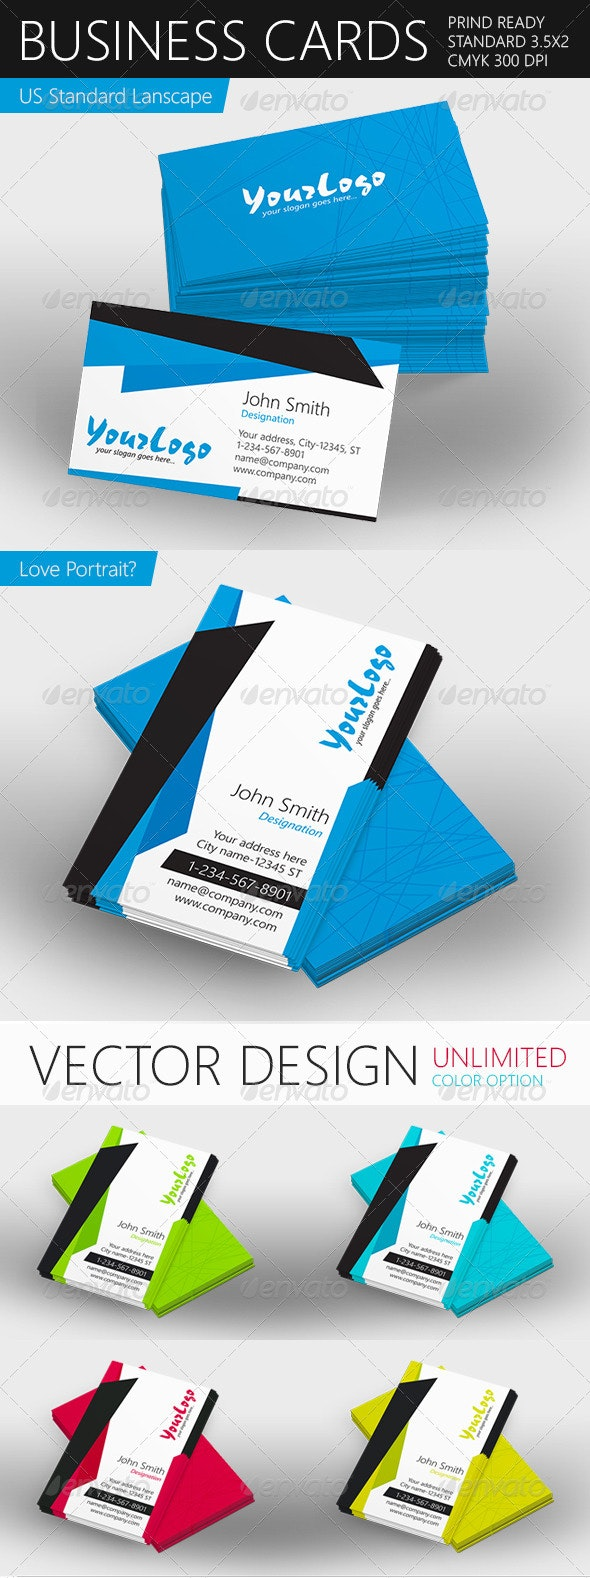 Print Ready Vector Business Card - Corporate Business Cards